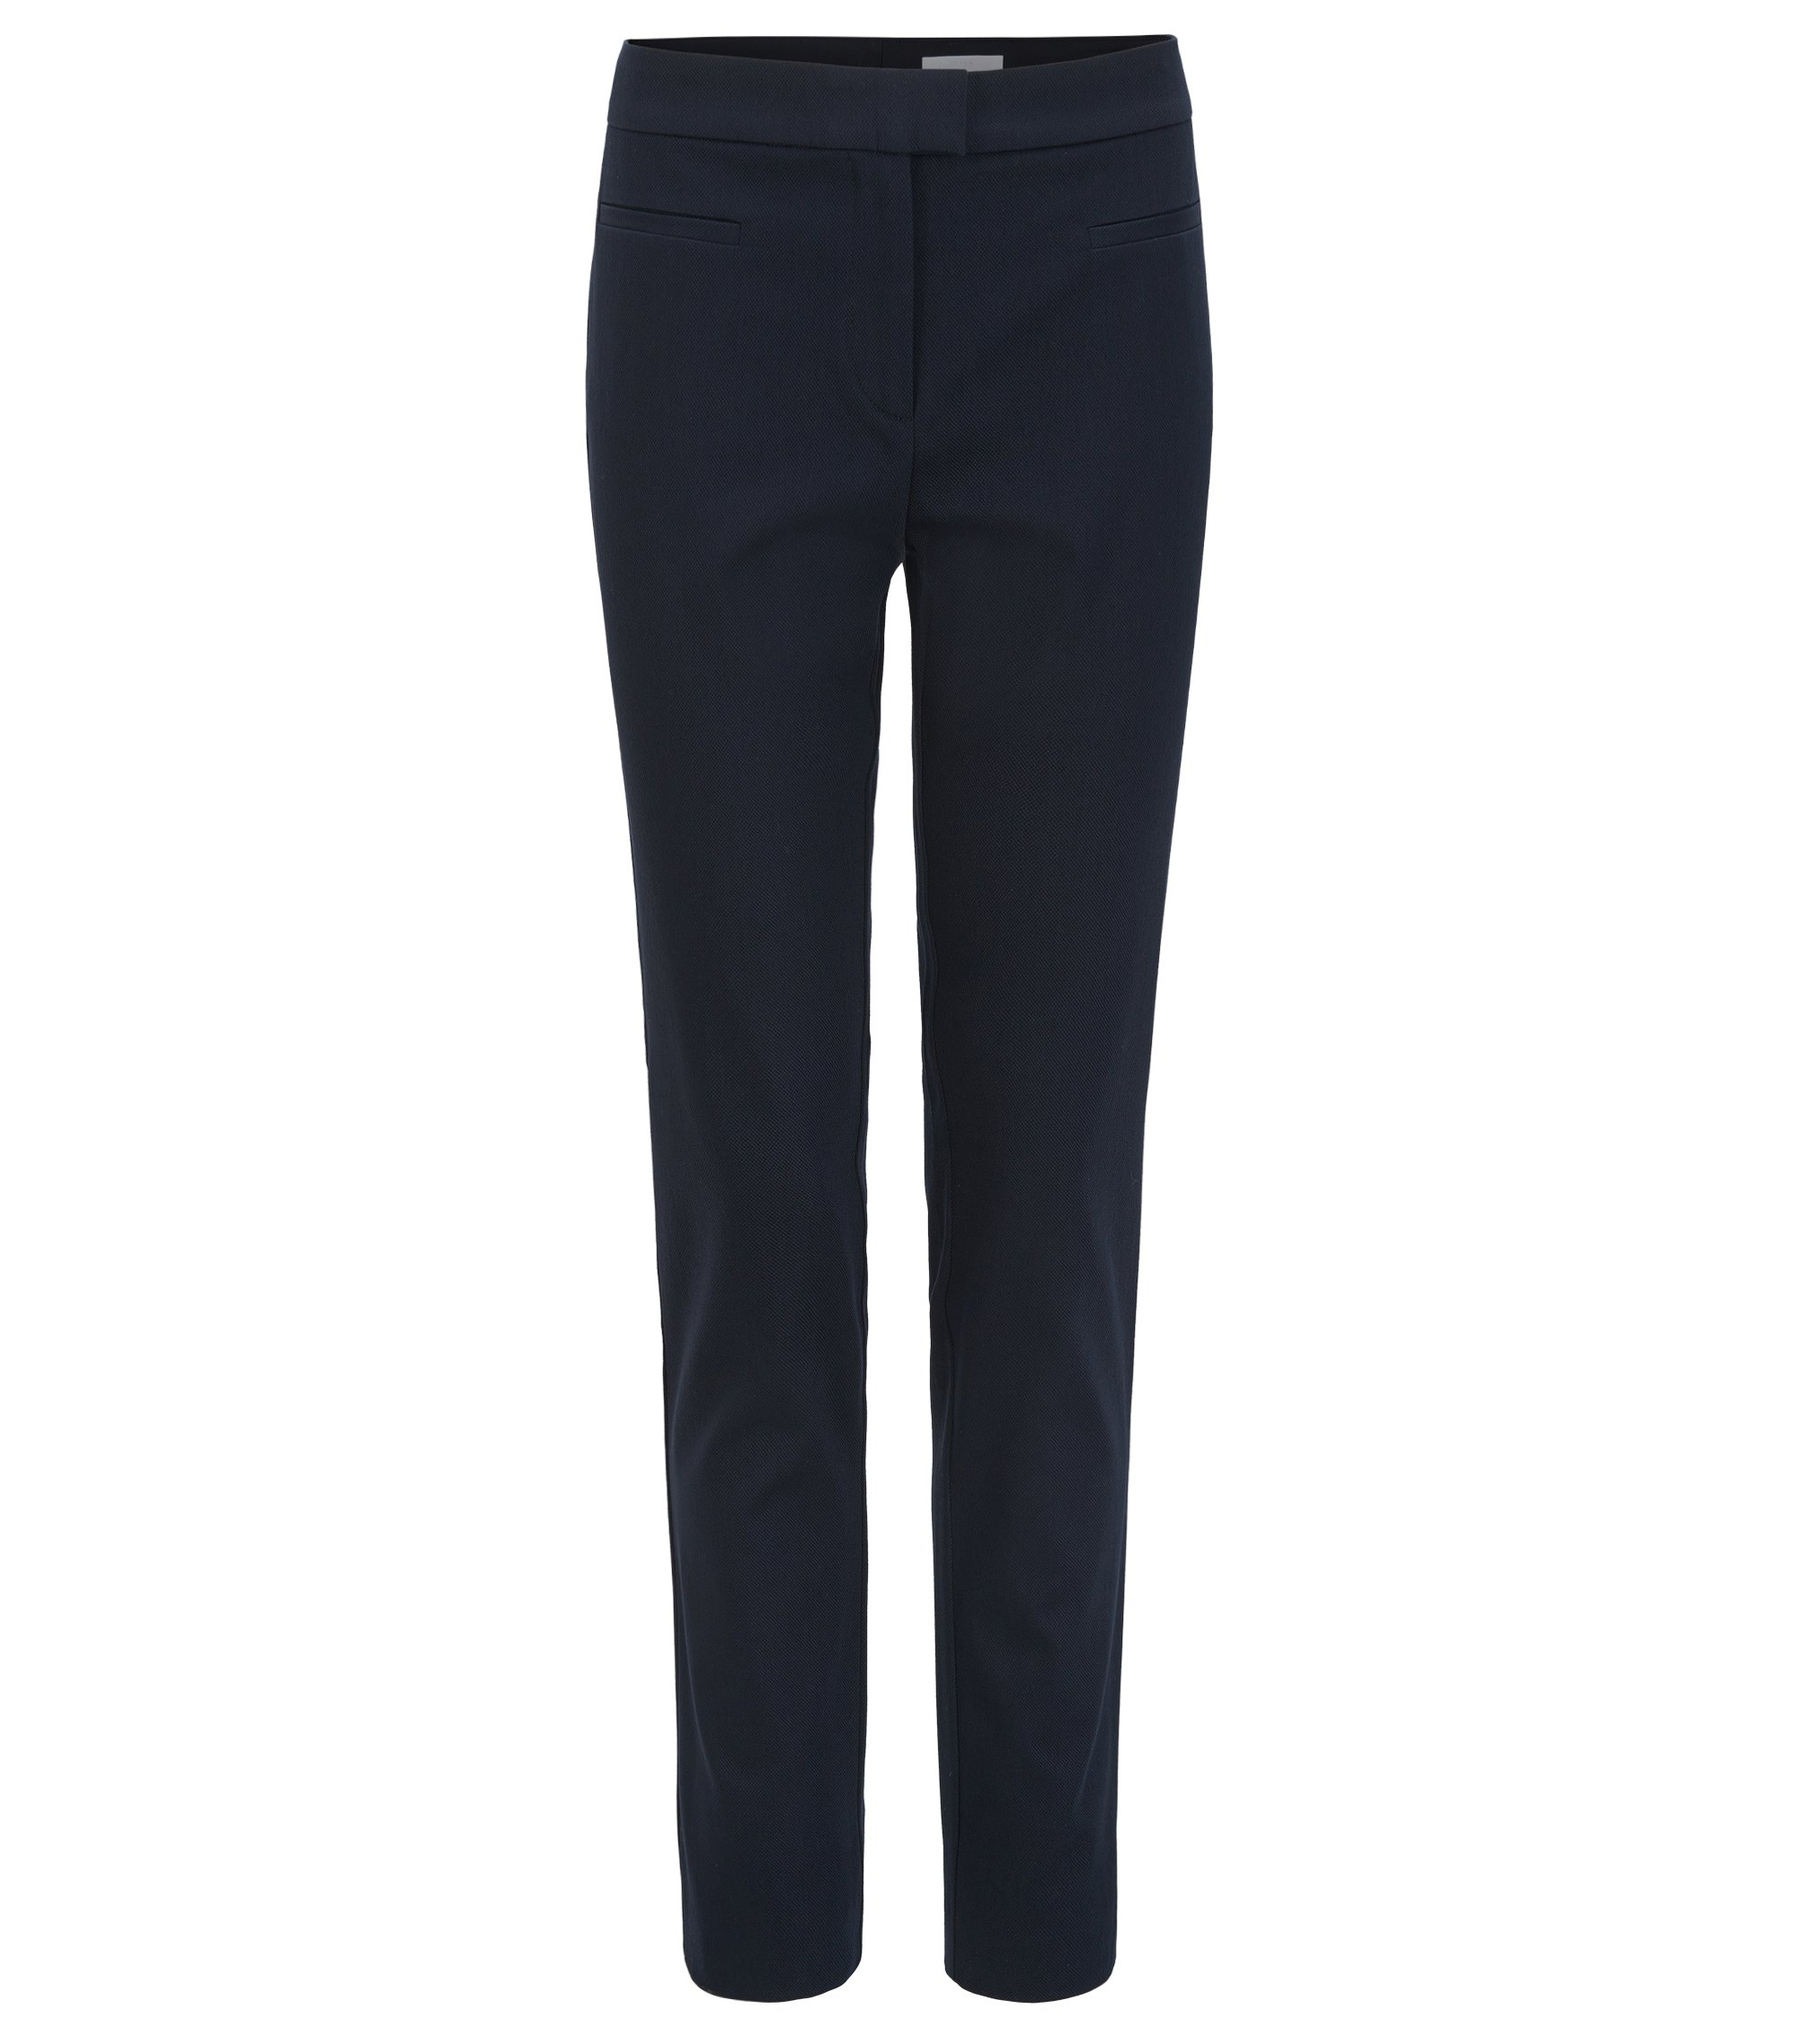 Slim-Fit Hose aus Stretch-Baumwolle in Cropped-Länge, Dunkelblau